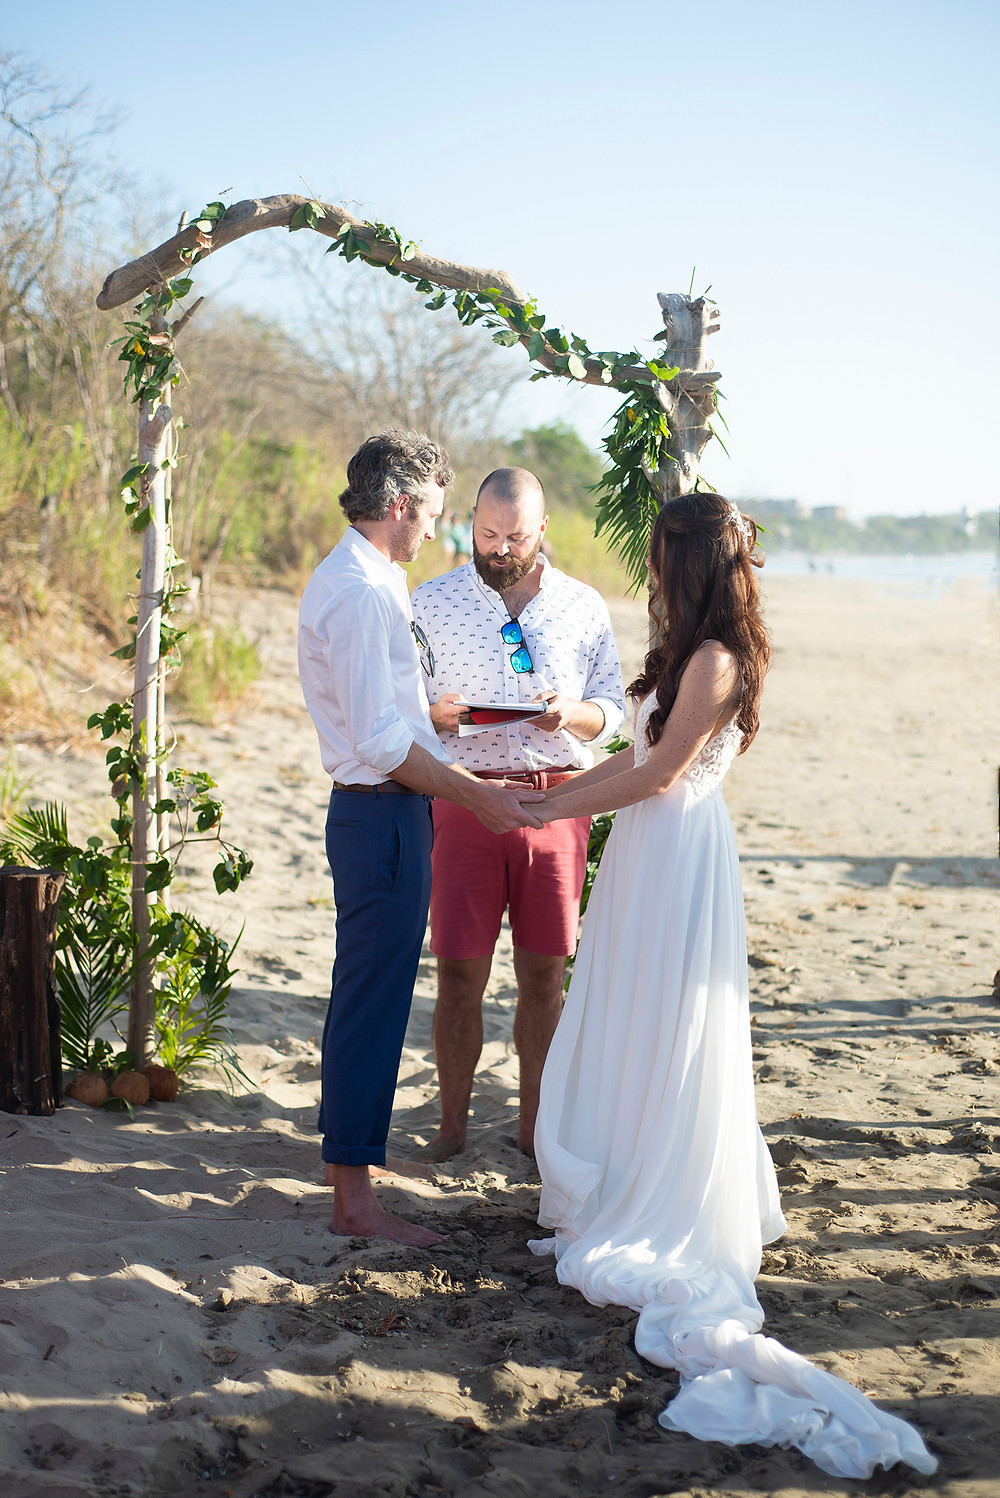 Destination wedding on the beach in Playa Grande, Costa Rica. Photographed by Kaitlyn Shea.